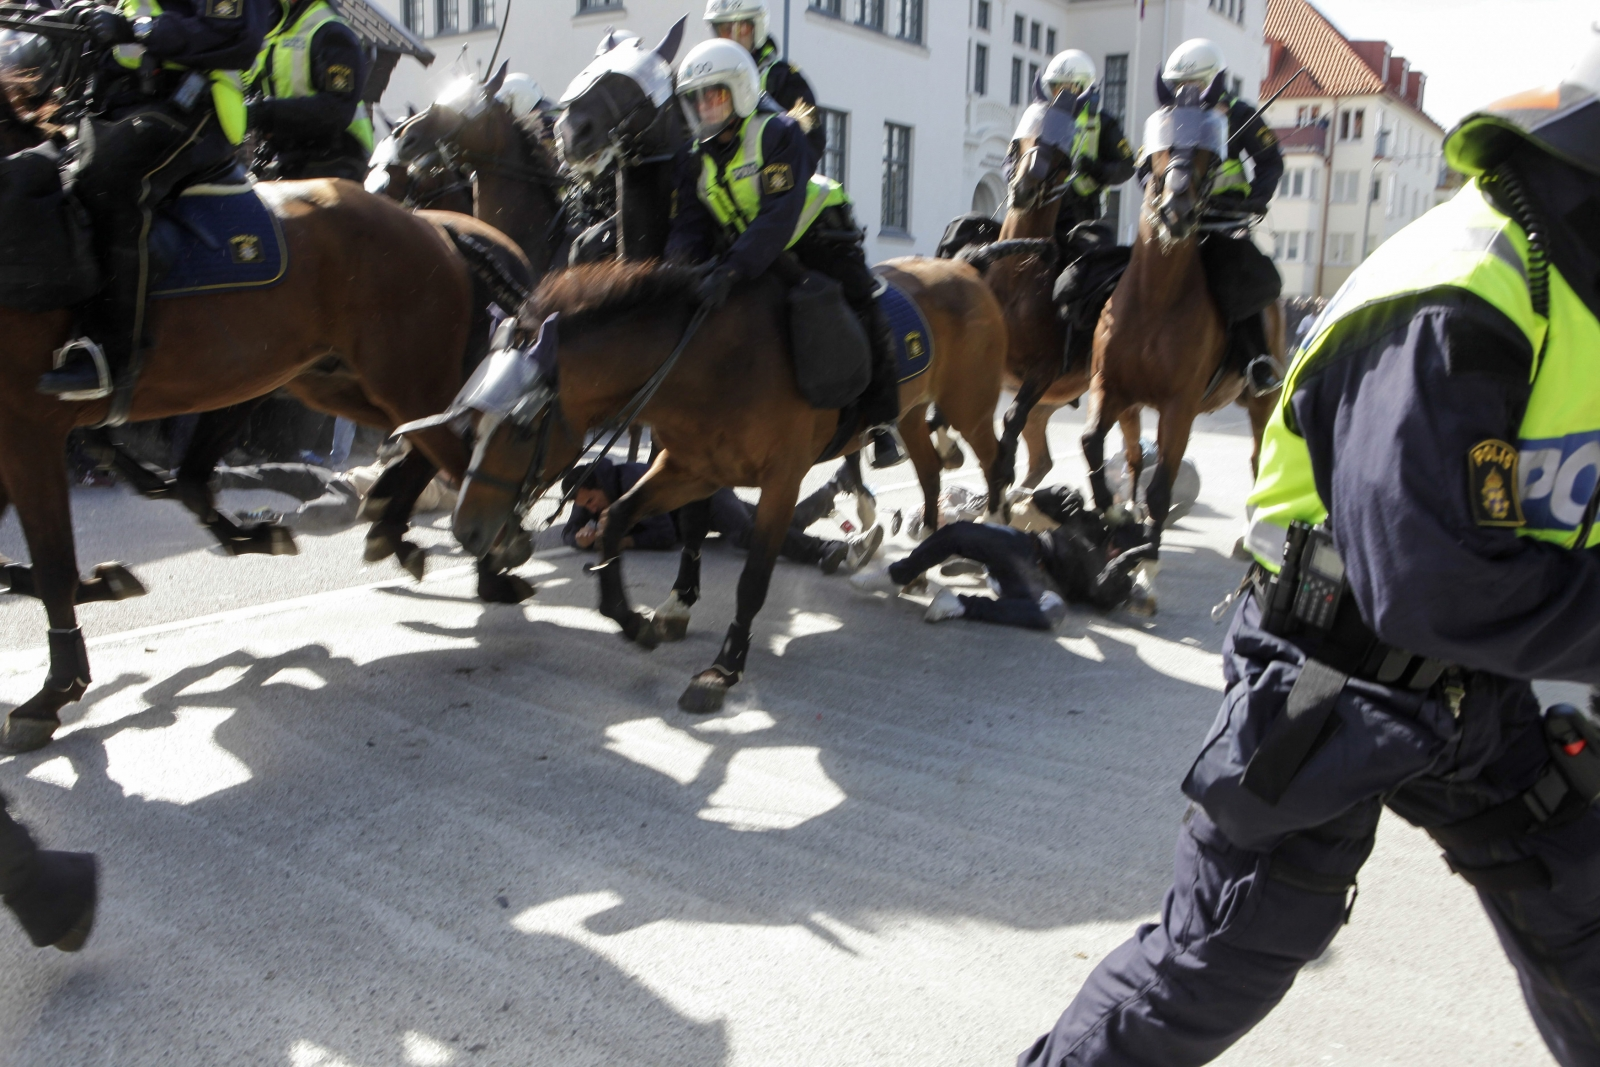 Protesters are seen below mounted police who are controlling a demonstration against an election meeting organised by right-wing political group The Party of the Swedes (Svenskarnas Parti) at a square in central Malmo